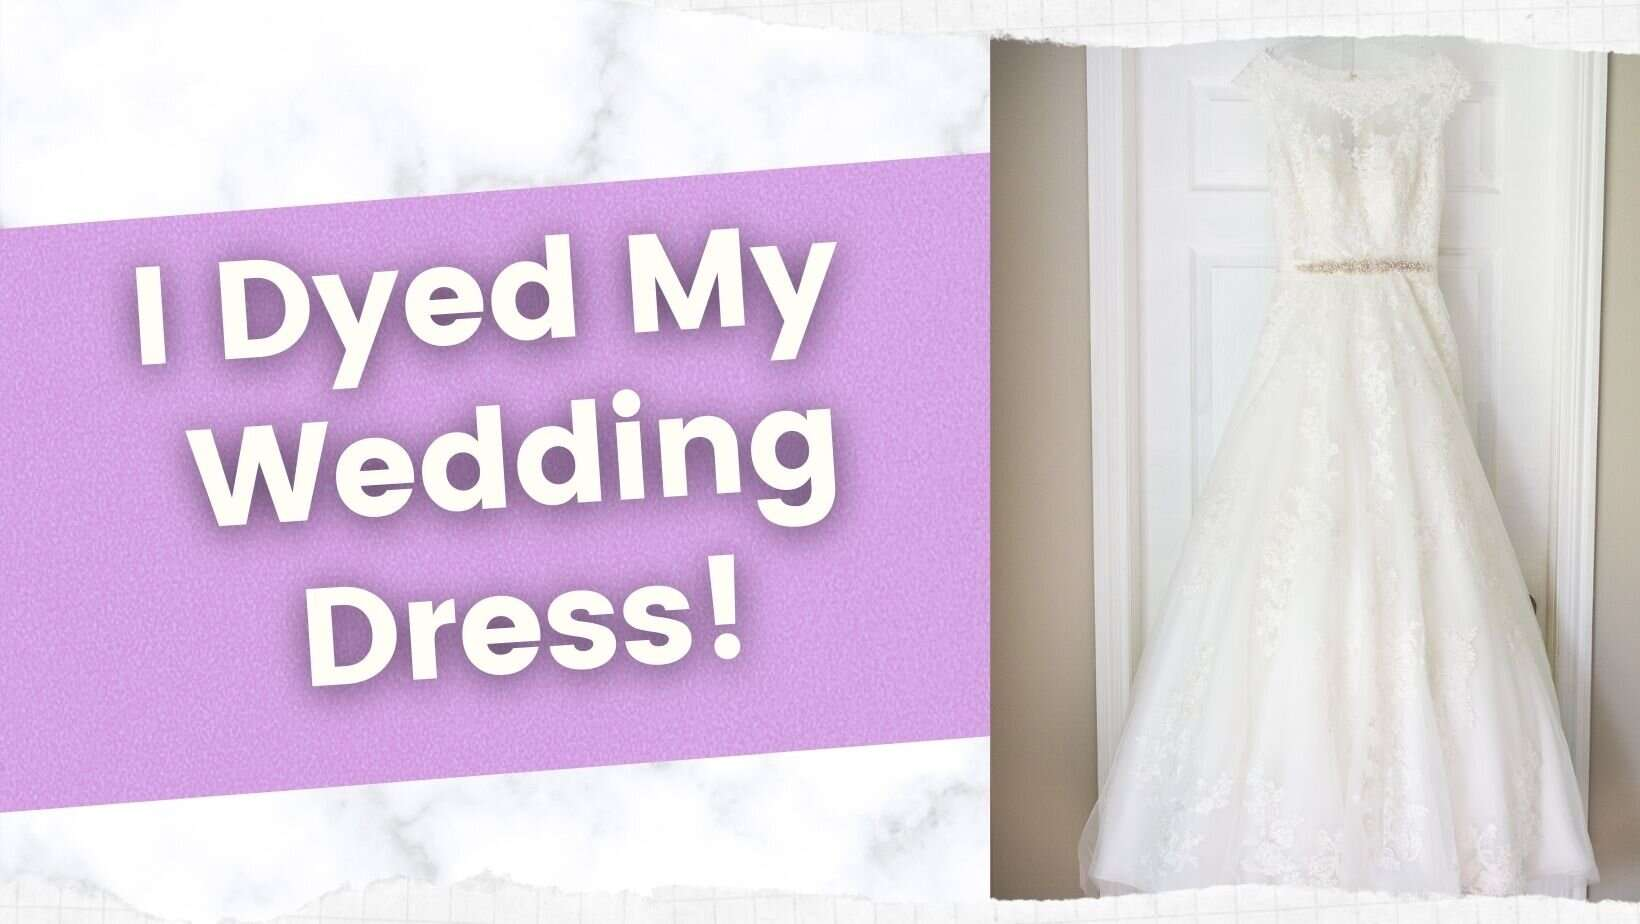 Dyed wedding dress featured image